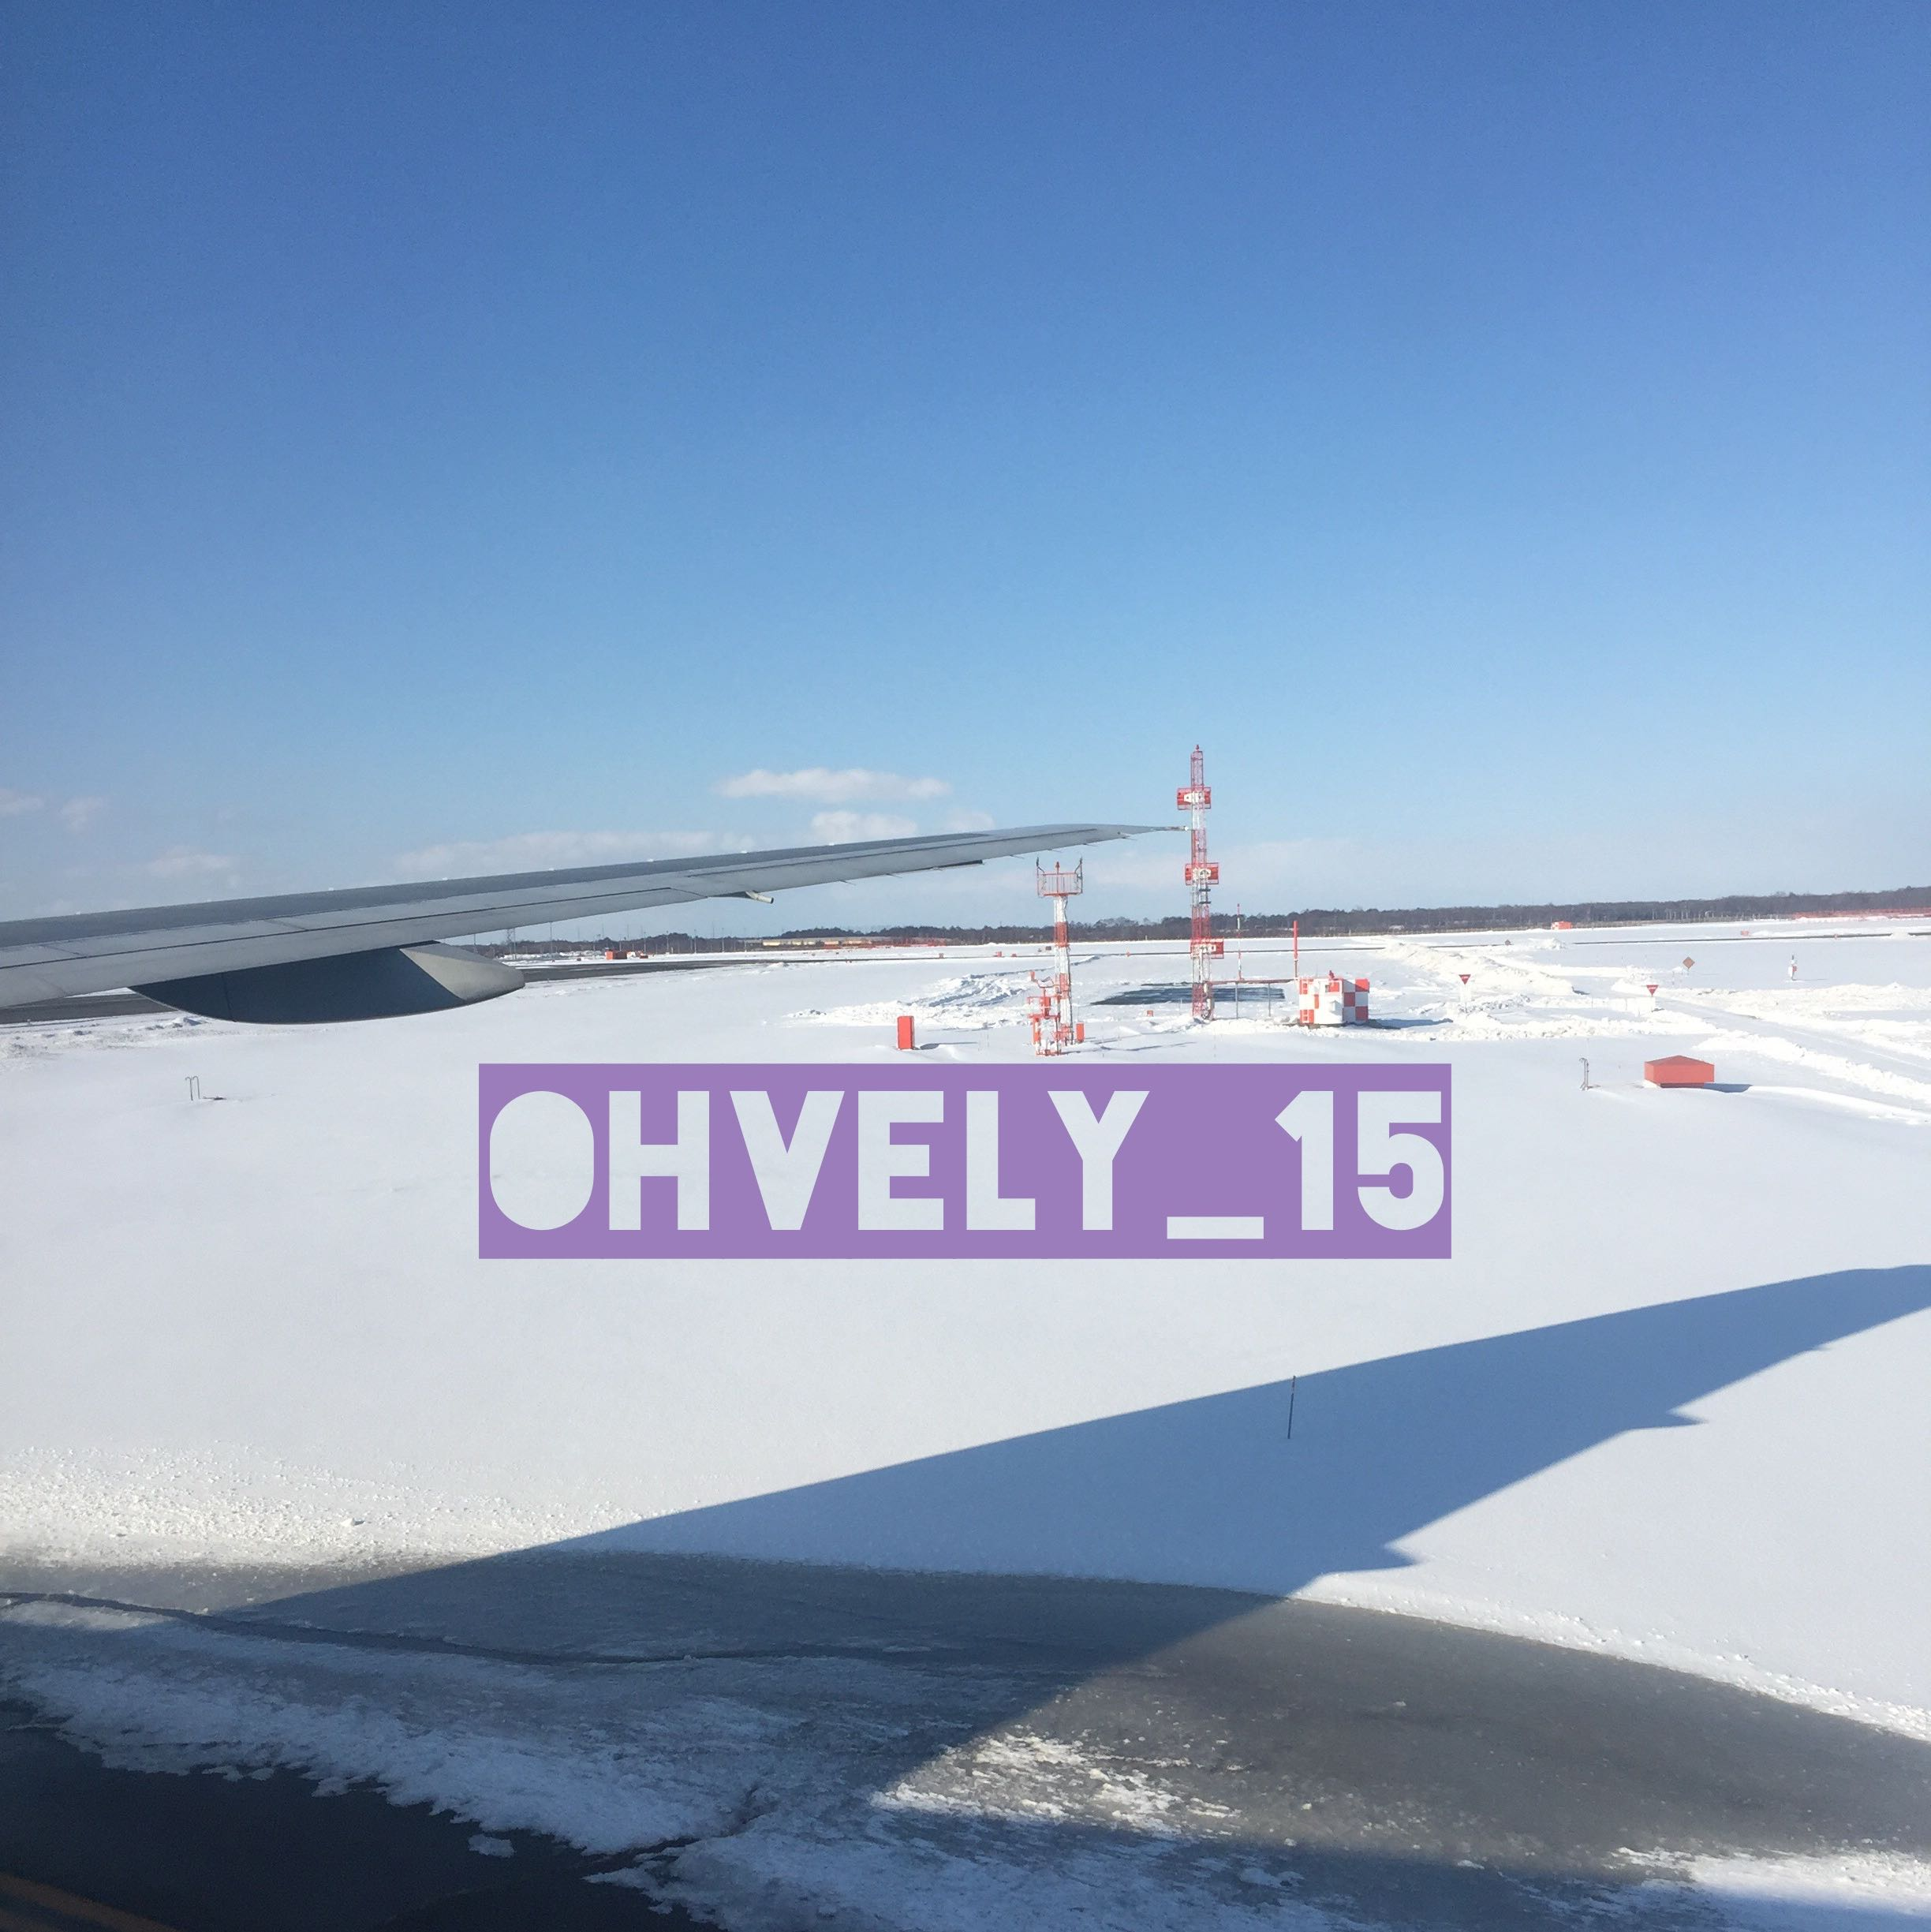 ohvely_15